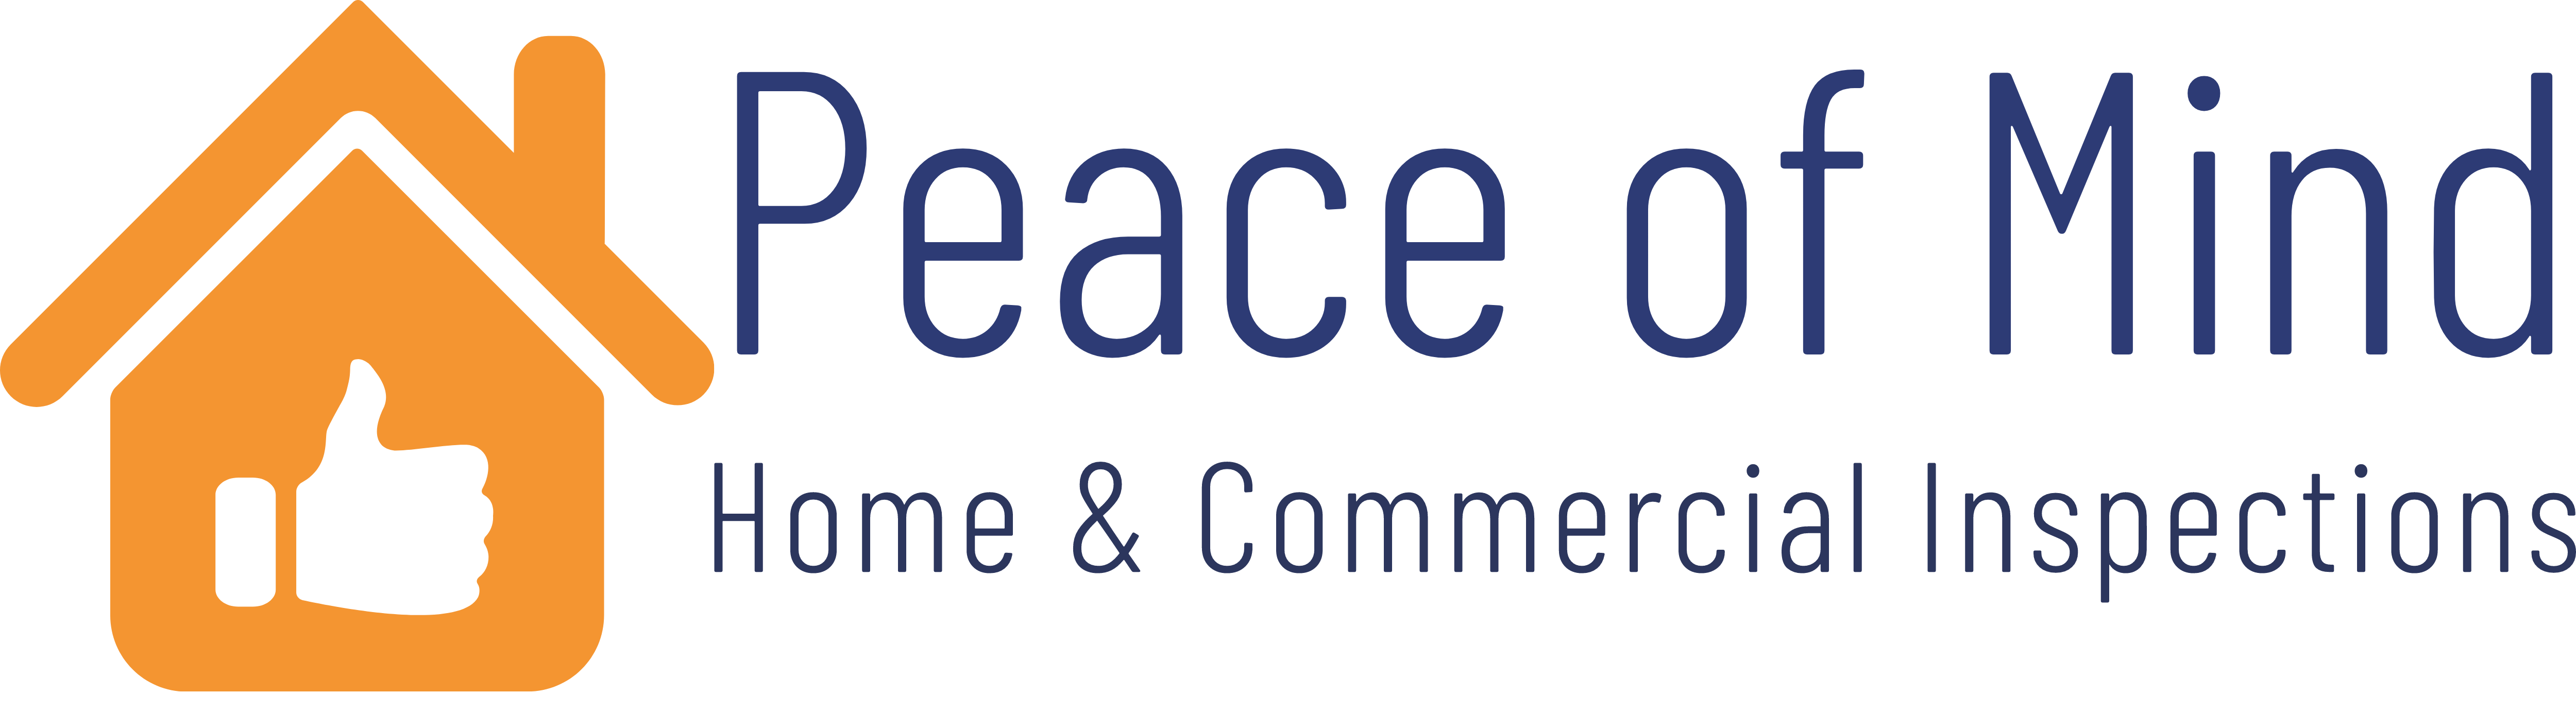 Peace of mind Home & Commercial Inspections Logo